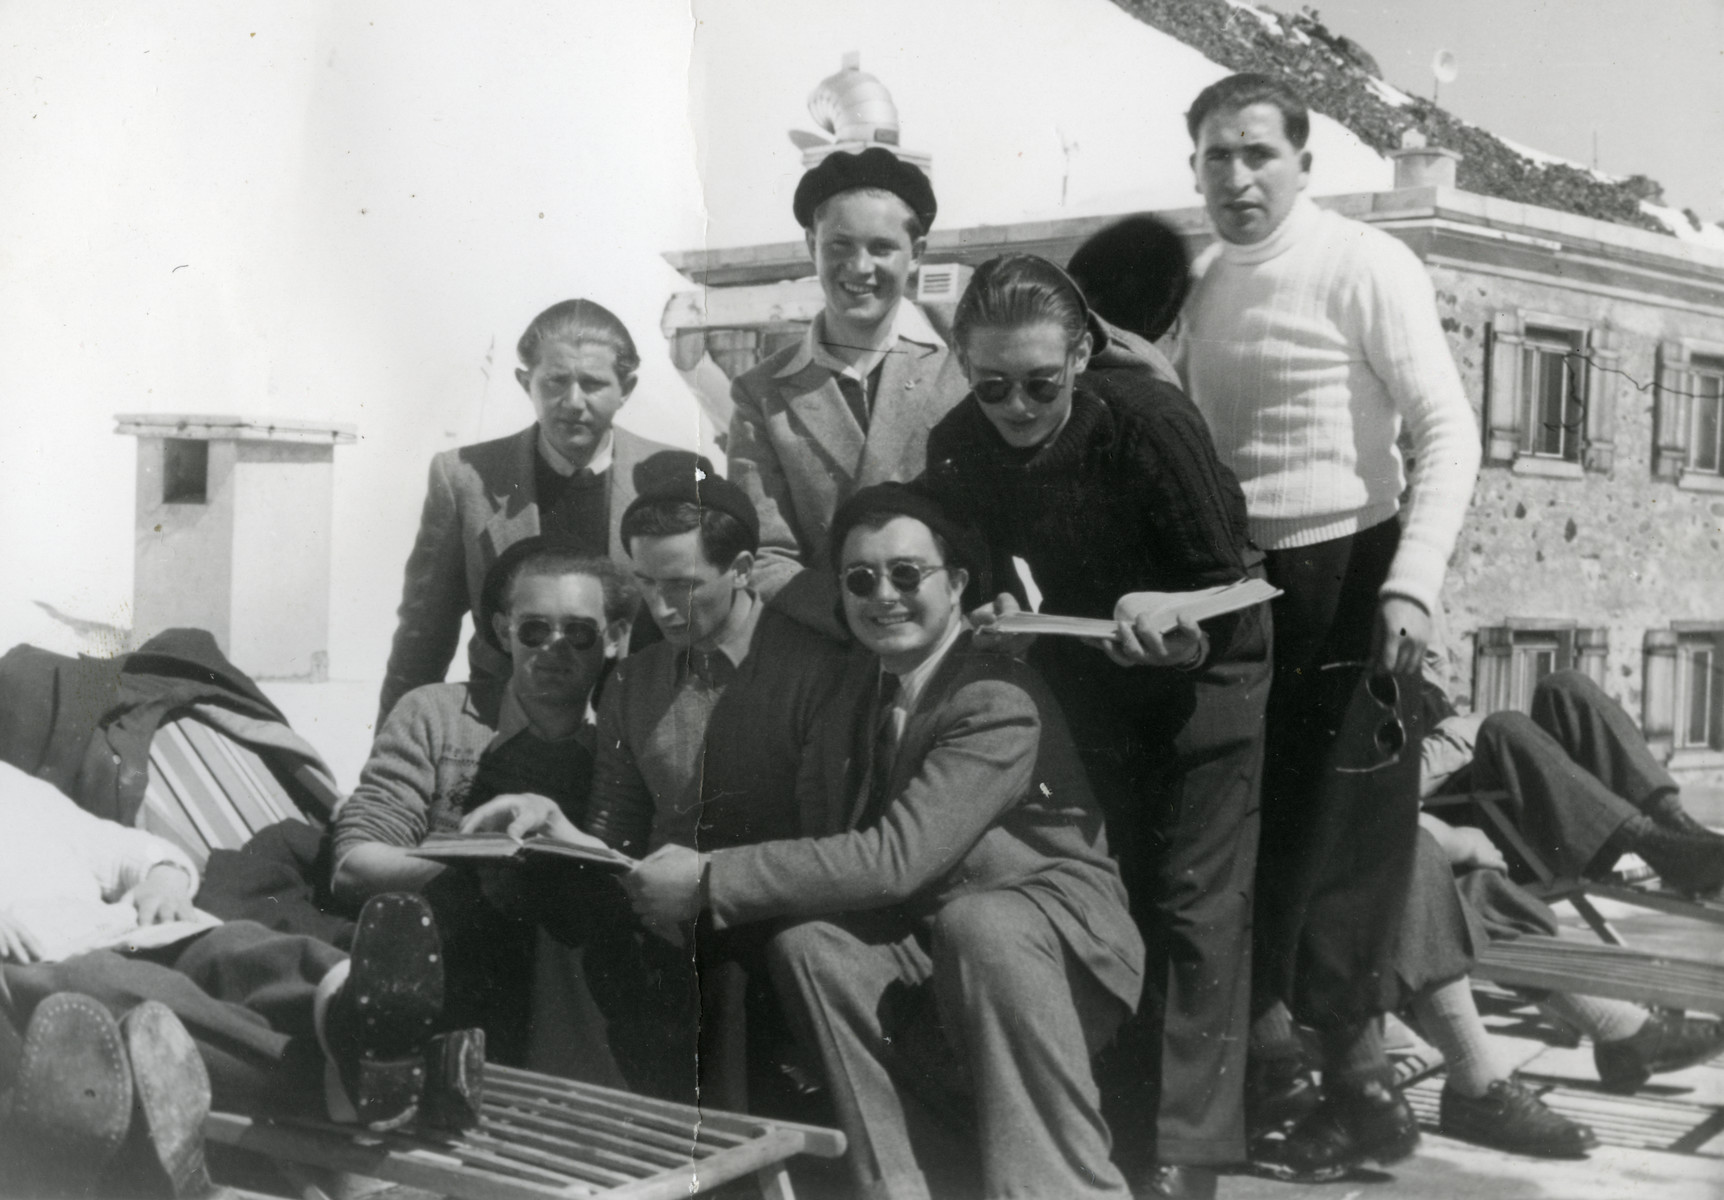 Jewish displaced persons recover in a sanatorium in Davos after the war.  Zvi Grundman is pictured in the front center reading a book.